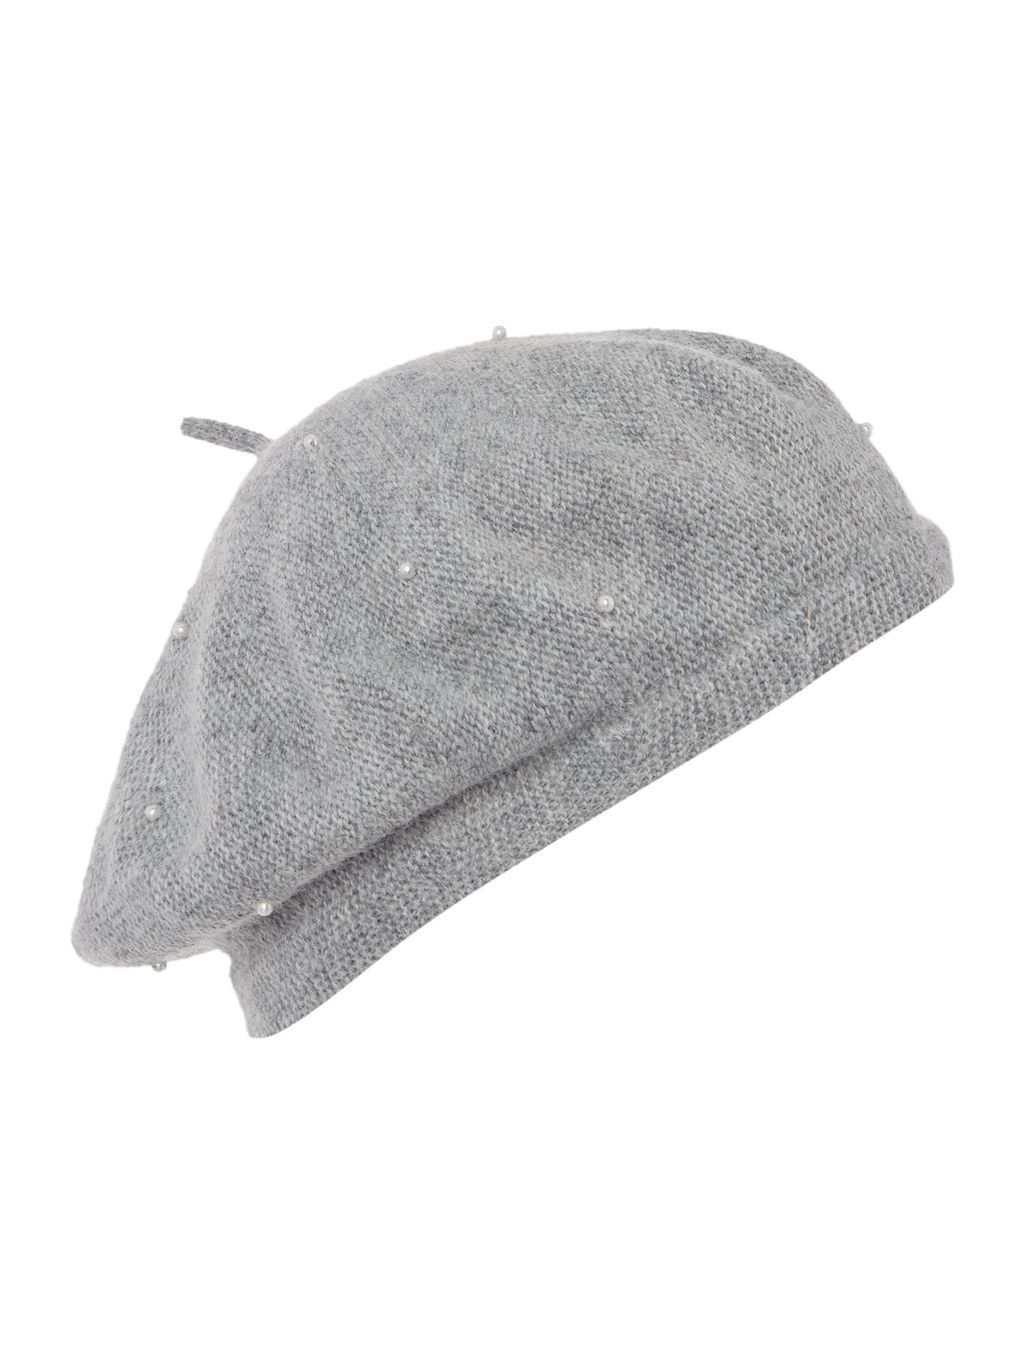 Matt Stud Beret, Grey - predominant colour: light grey; occasions: casual; type of pattern: standard; style: beanie; size: standard; material: knits; pattern: plain; season: a/w 2015; wardrobe: basic